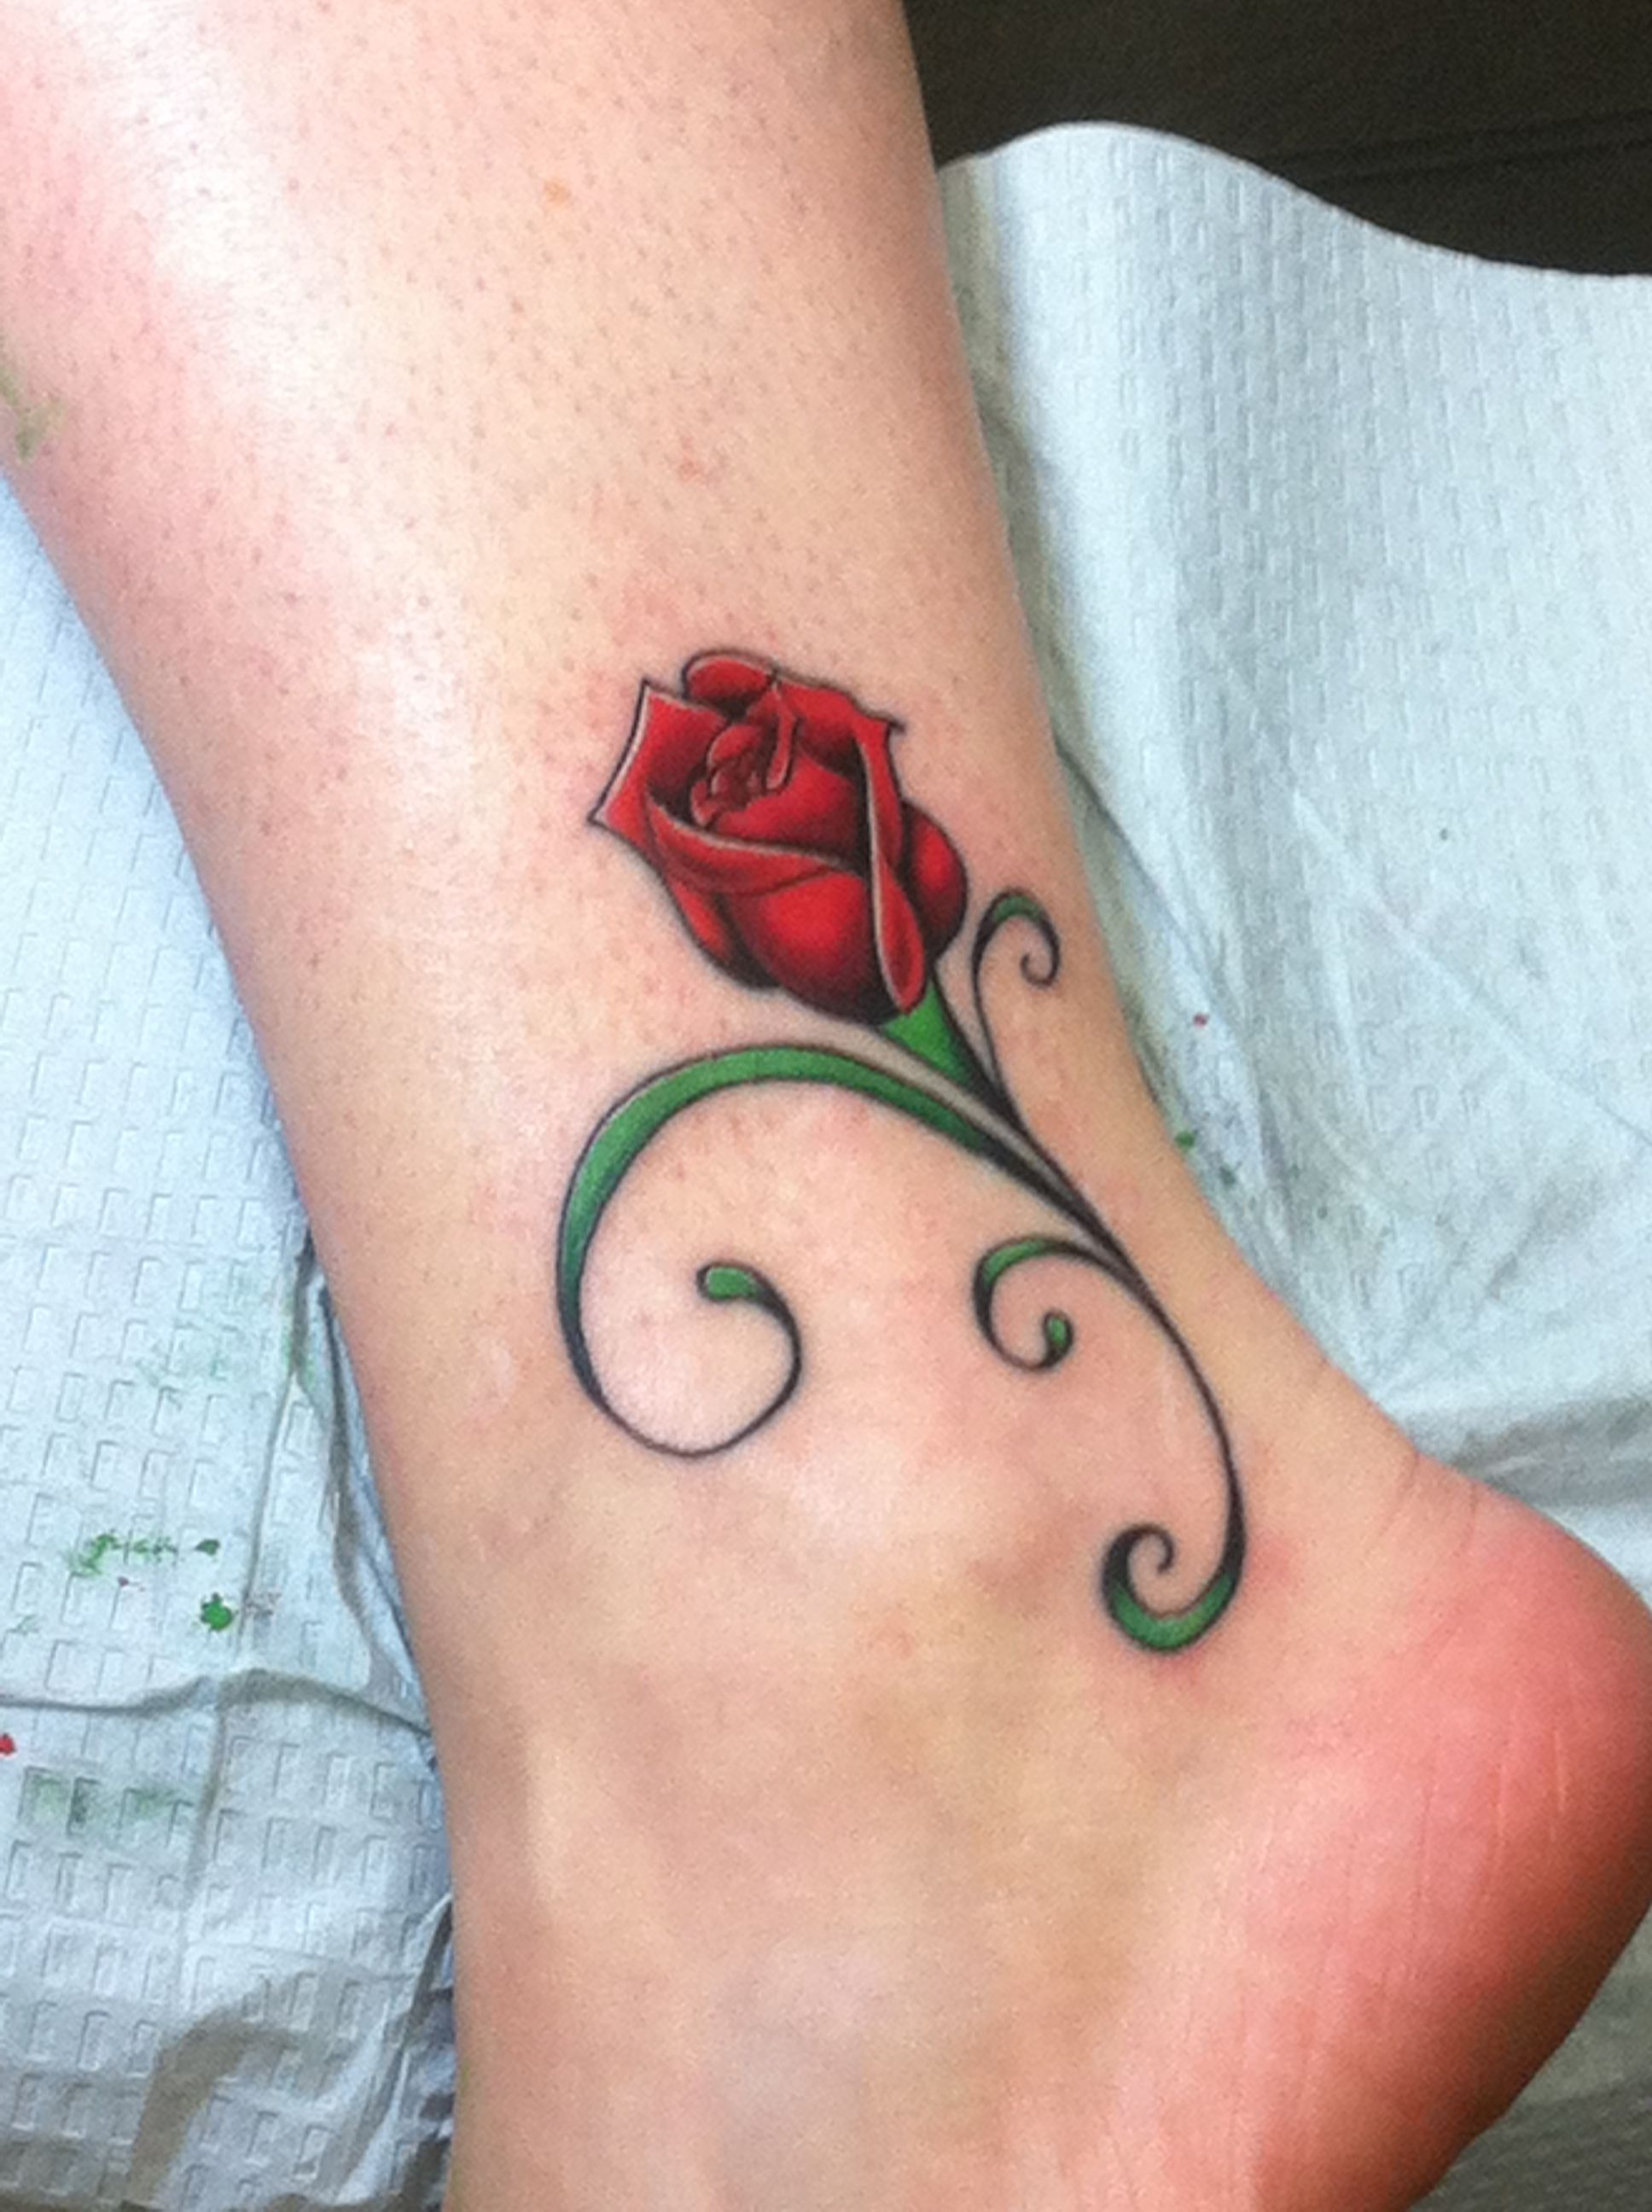 Pin By Tiffany Geare On Tattoos Rose Bud Tattoo Rose Tattoo Design Red Rose Tattoo